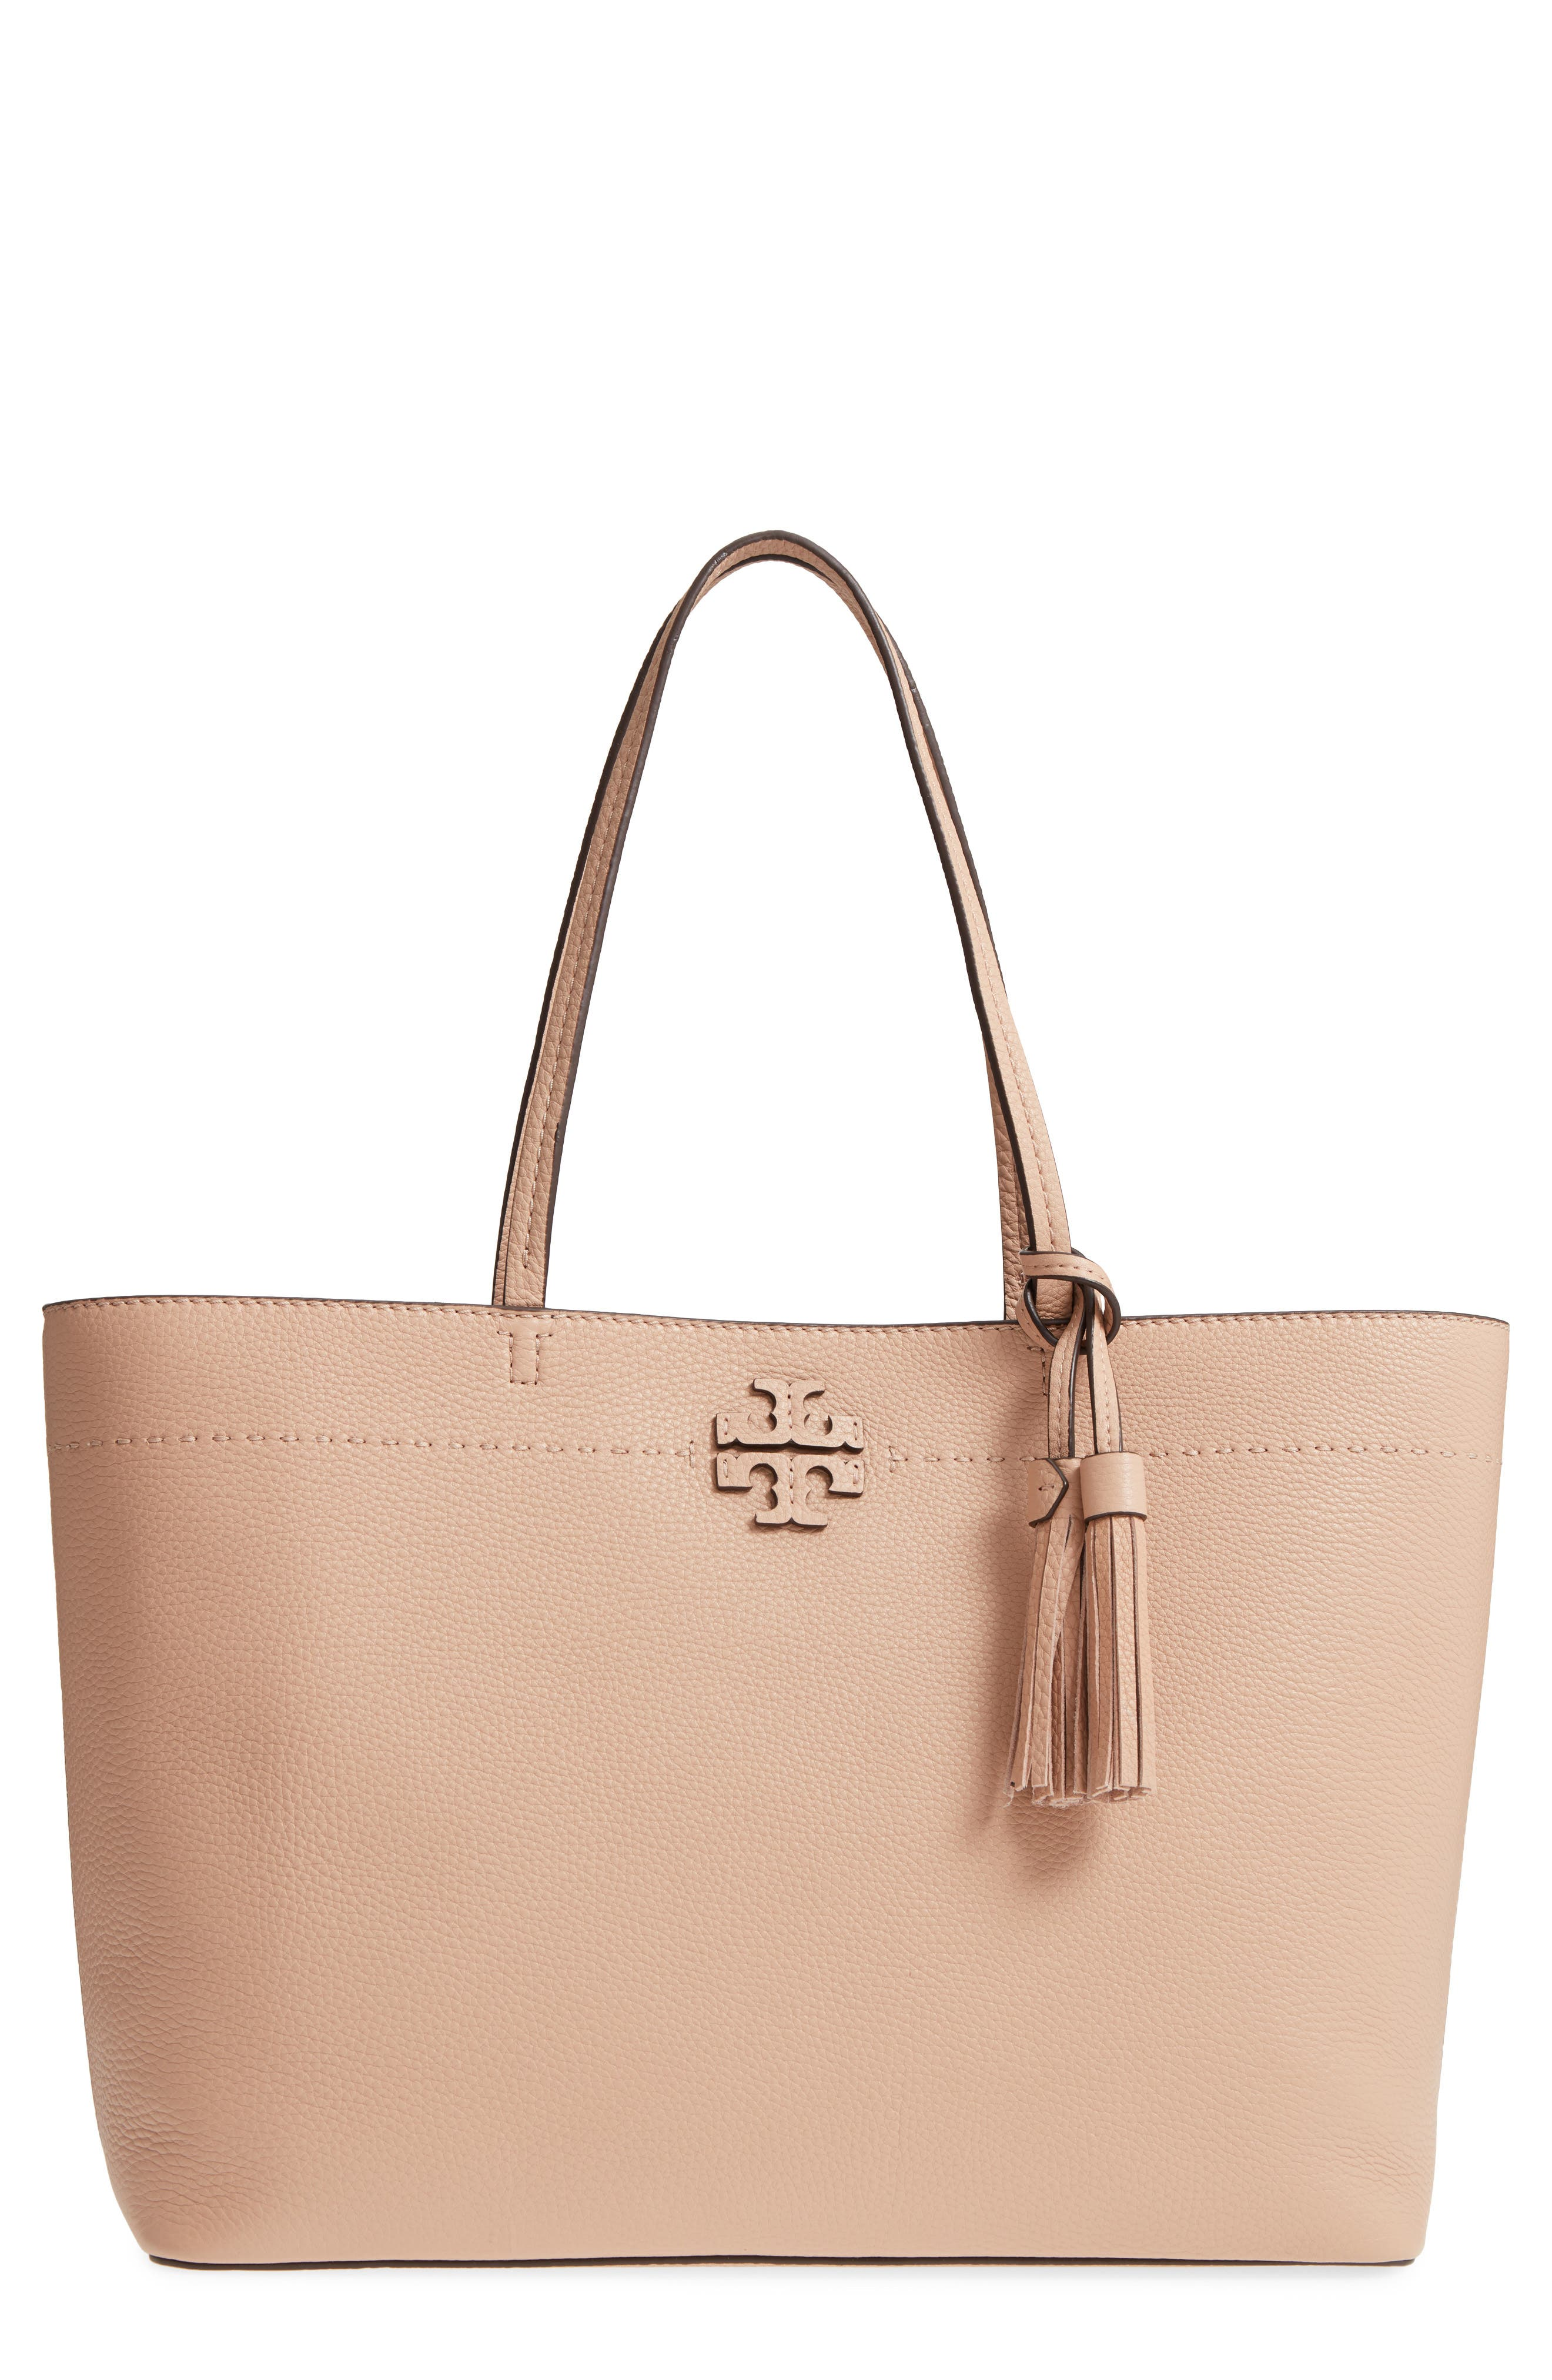 Mcgraw Leather Laptop Tote - Pink in Devon Sand